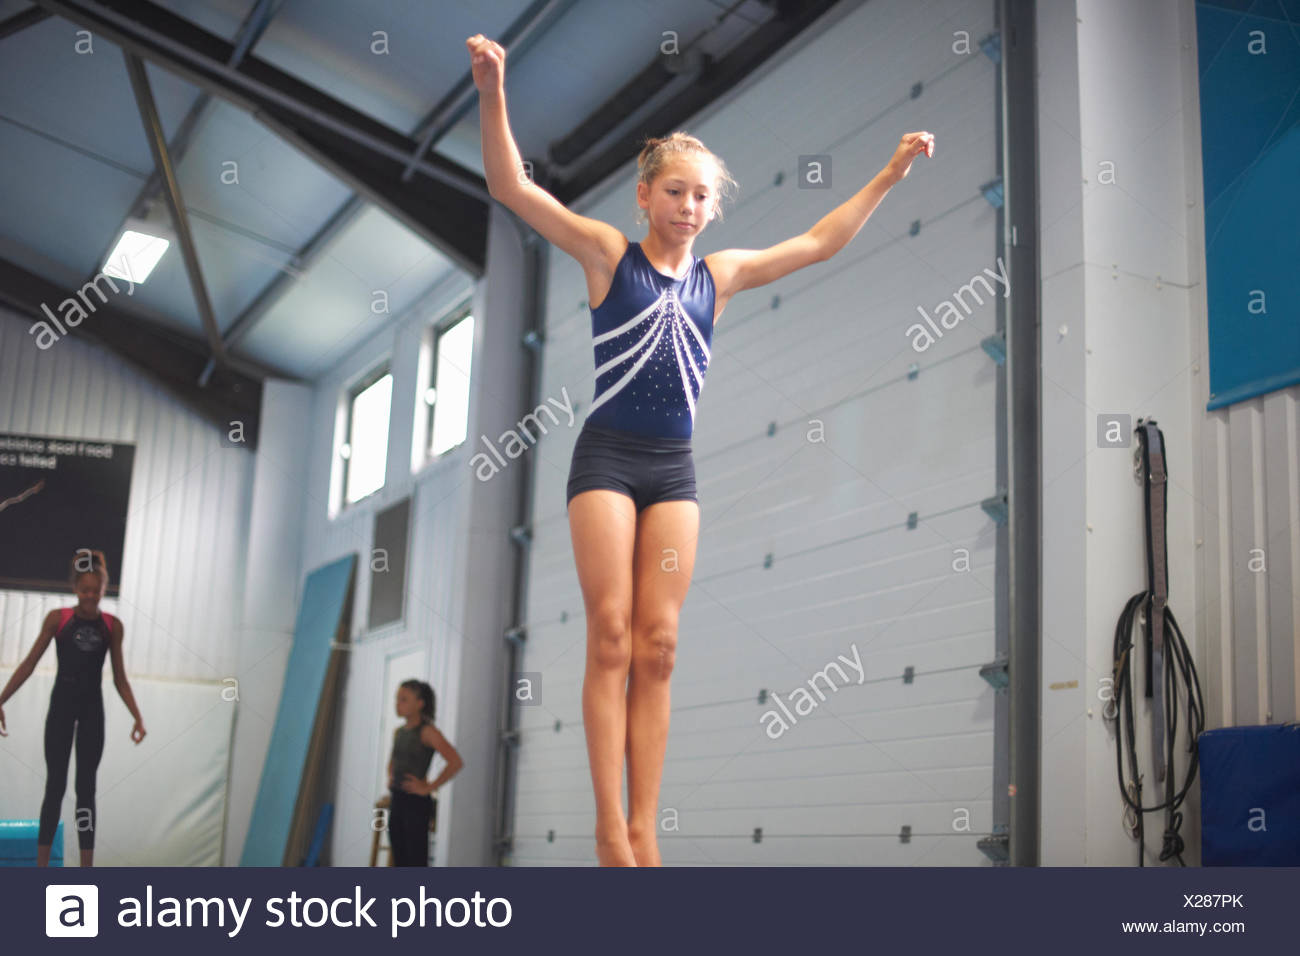 Young gymnasts practising moves - Stock Image